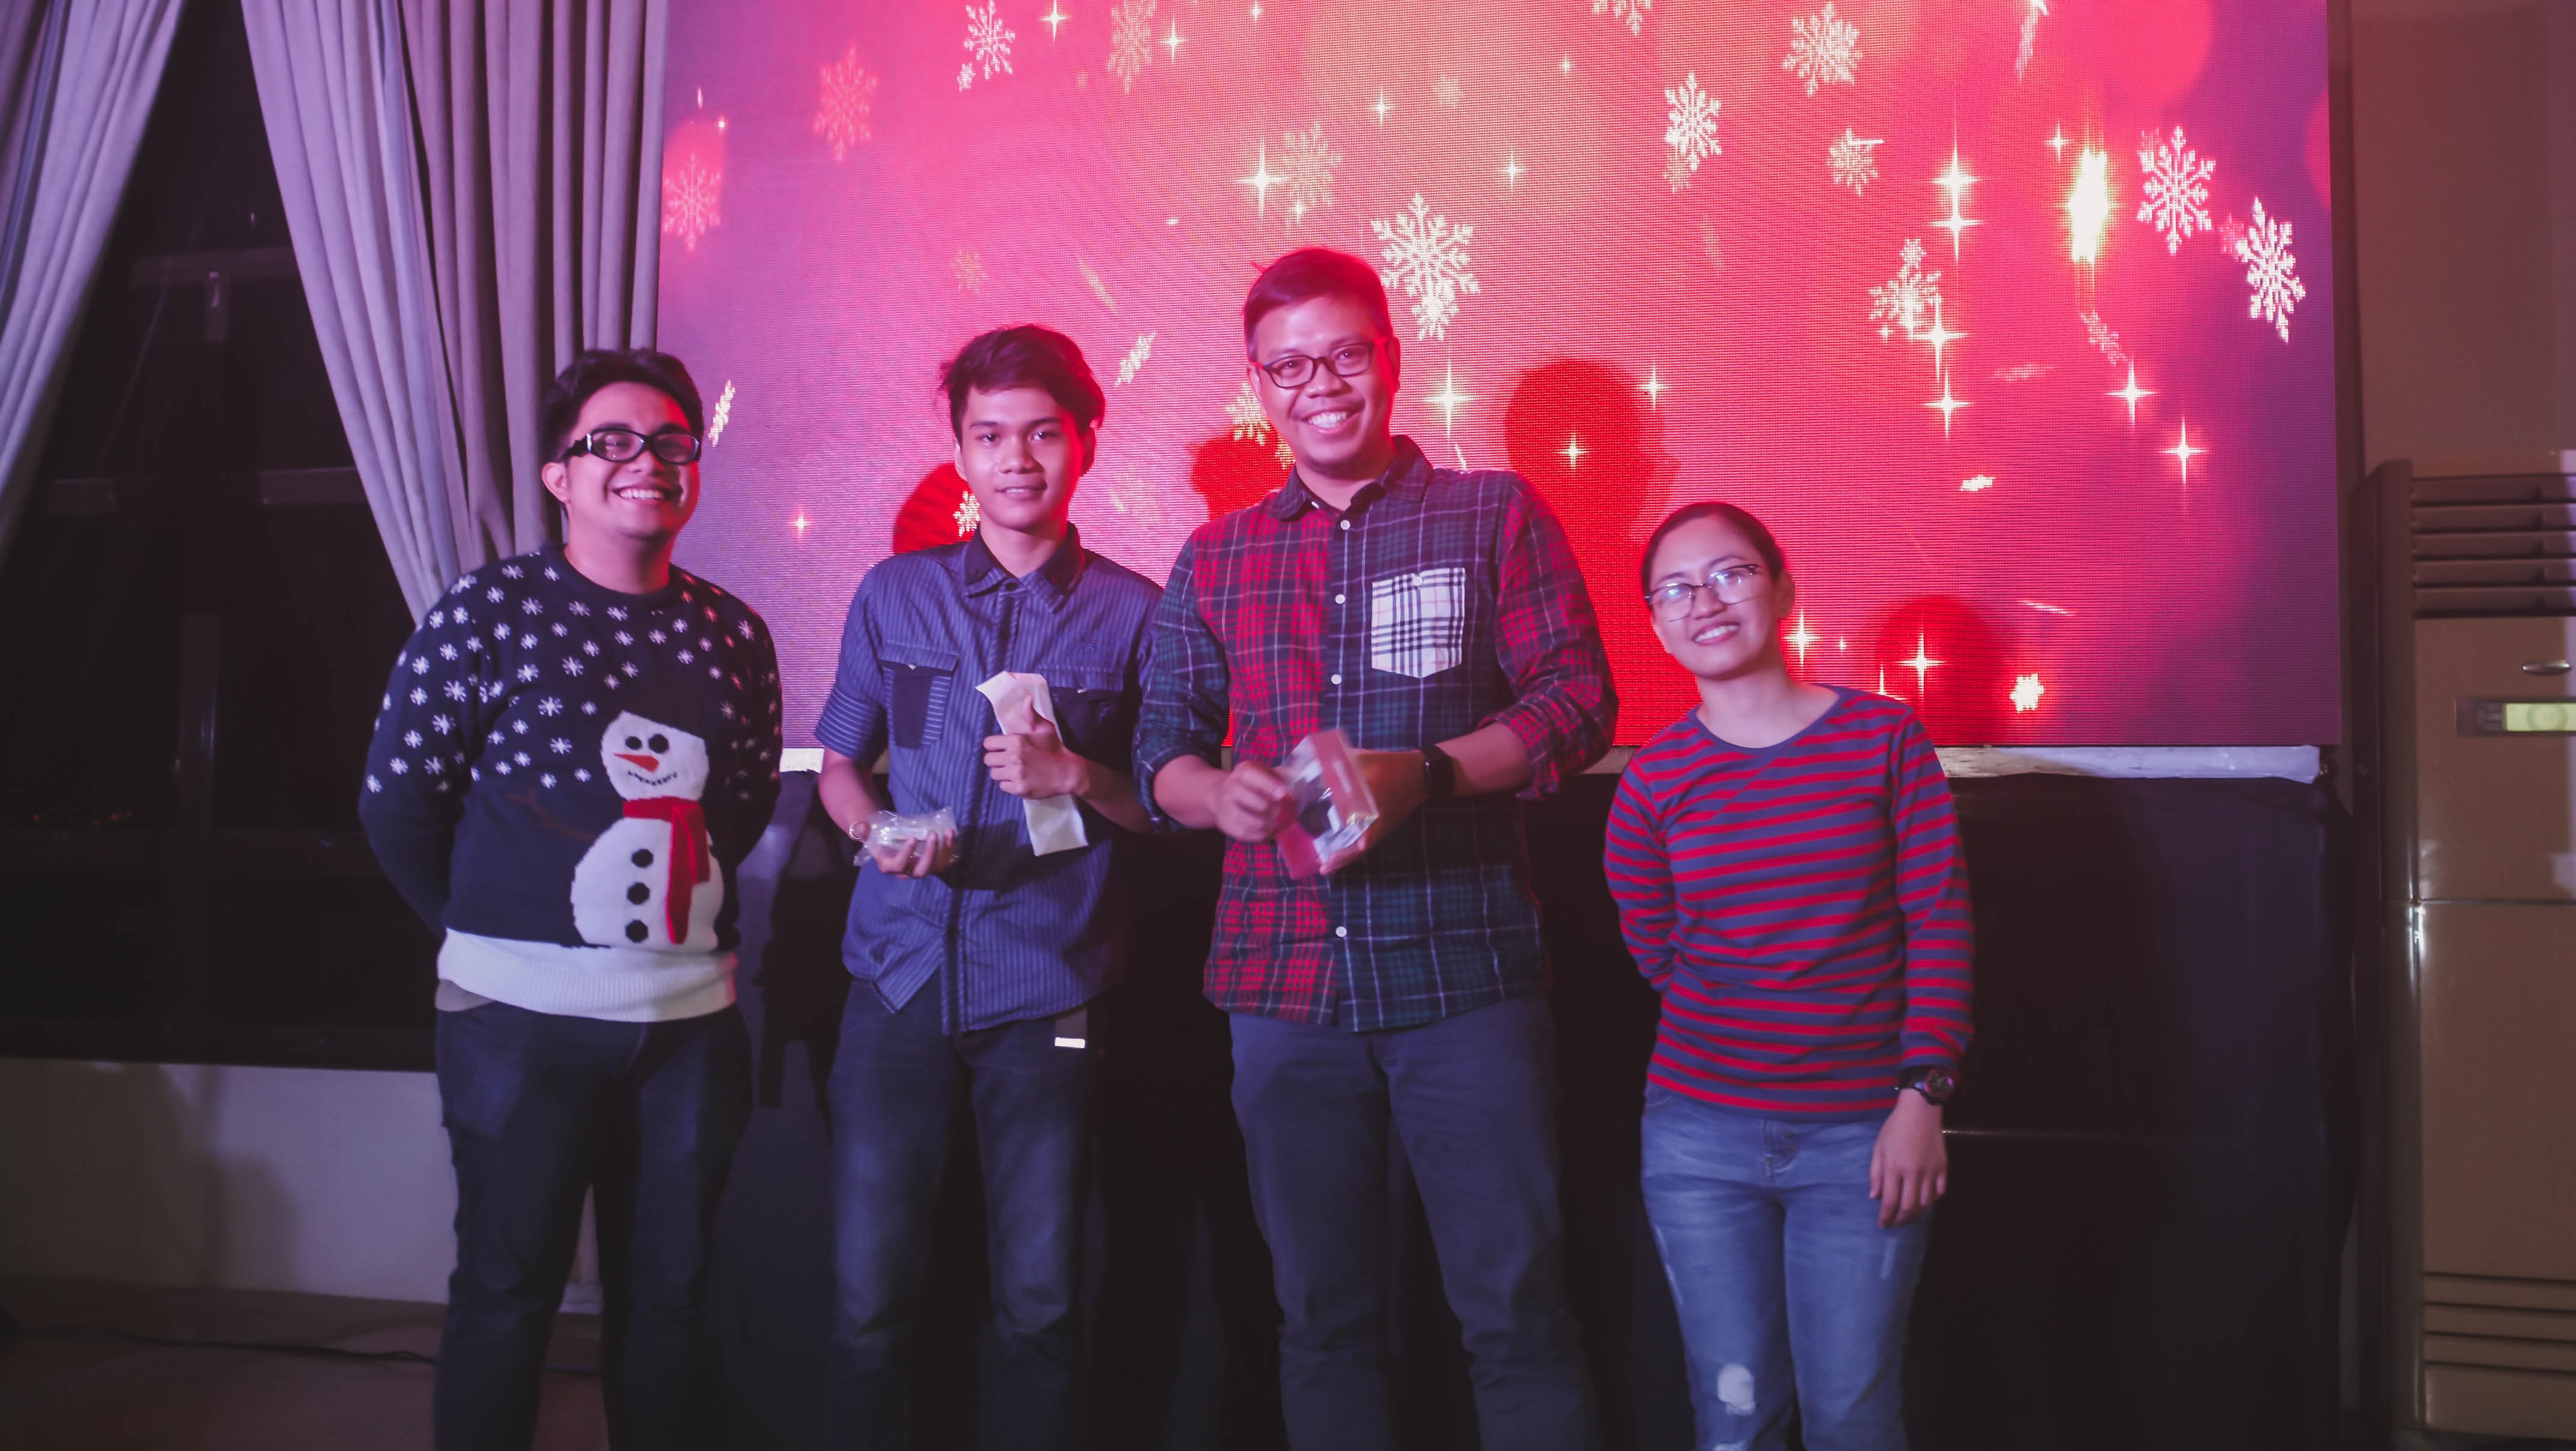 CHRISTMAS PARTY_2018-384288 x 2416